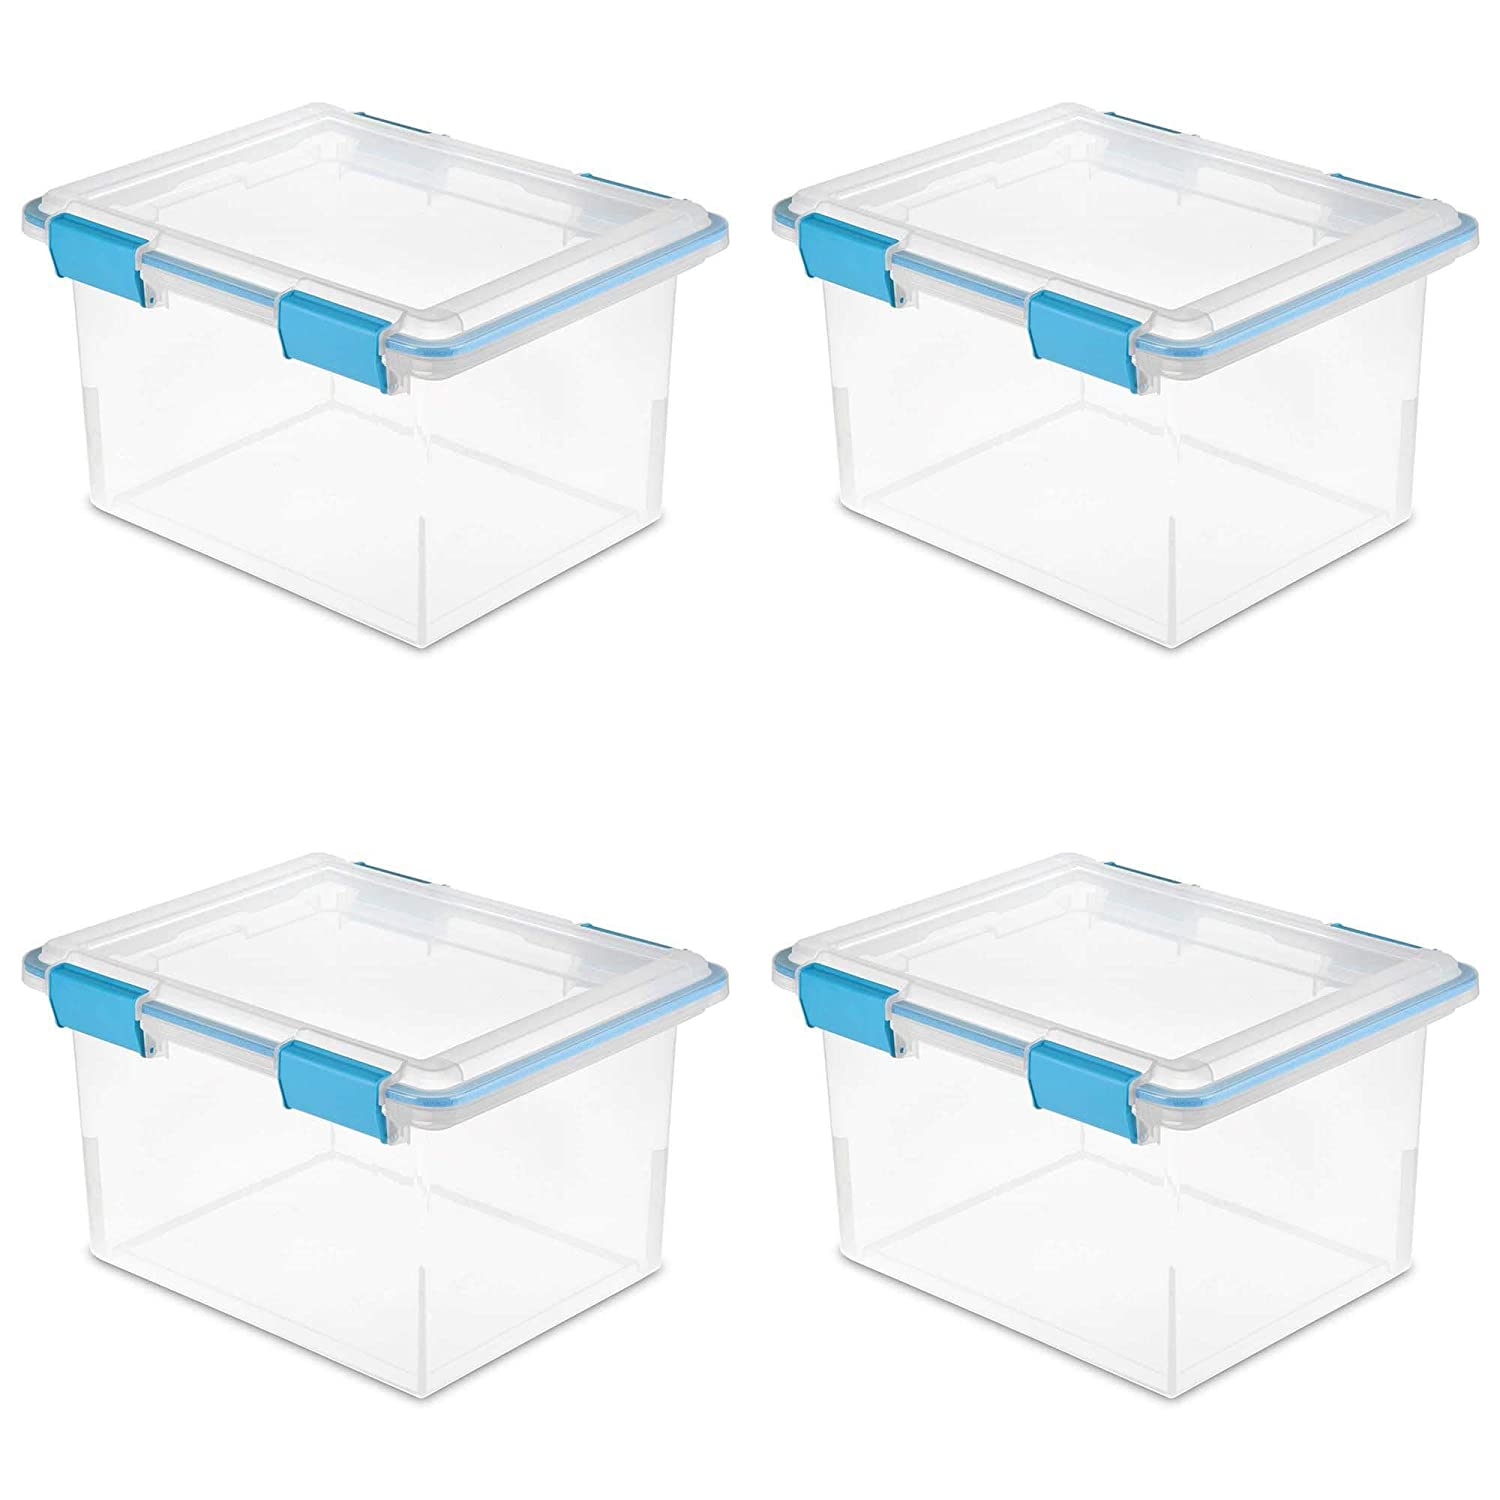 Sterilite 19334304 32 Quart Gasket Box with Clear Base and Lid (4 Pack)